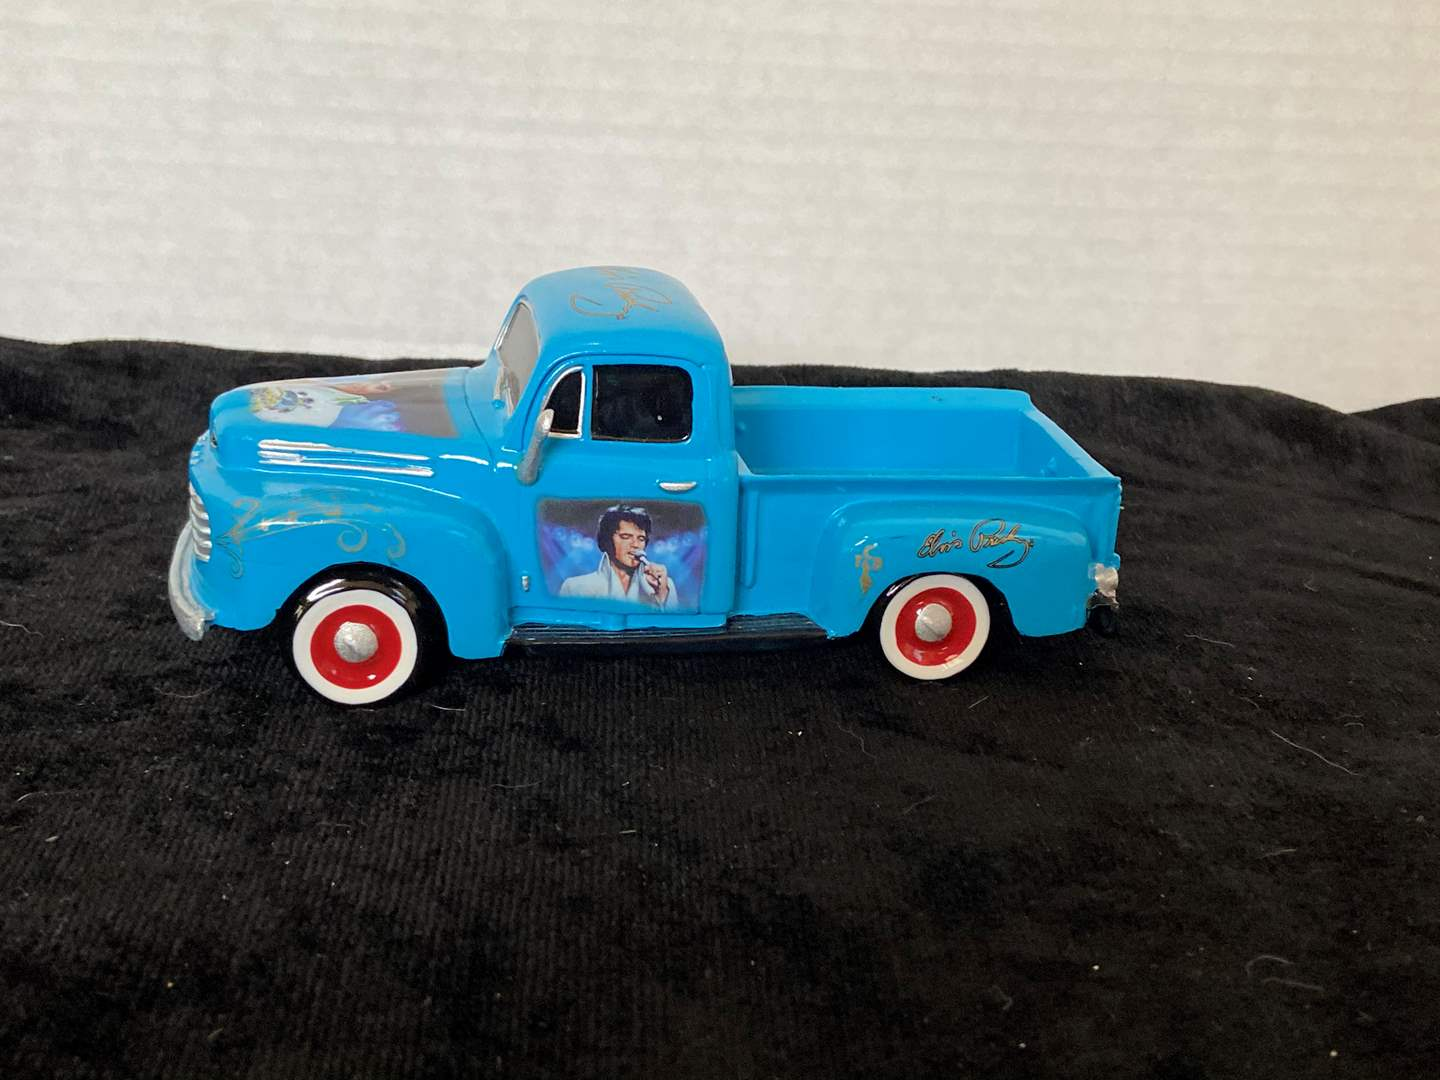 Lot # 190 Runaway with Elvis 1:36 Scale Truck Rolling with Elvis